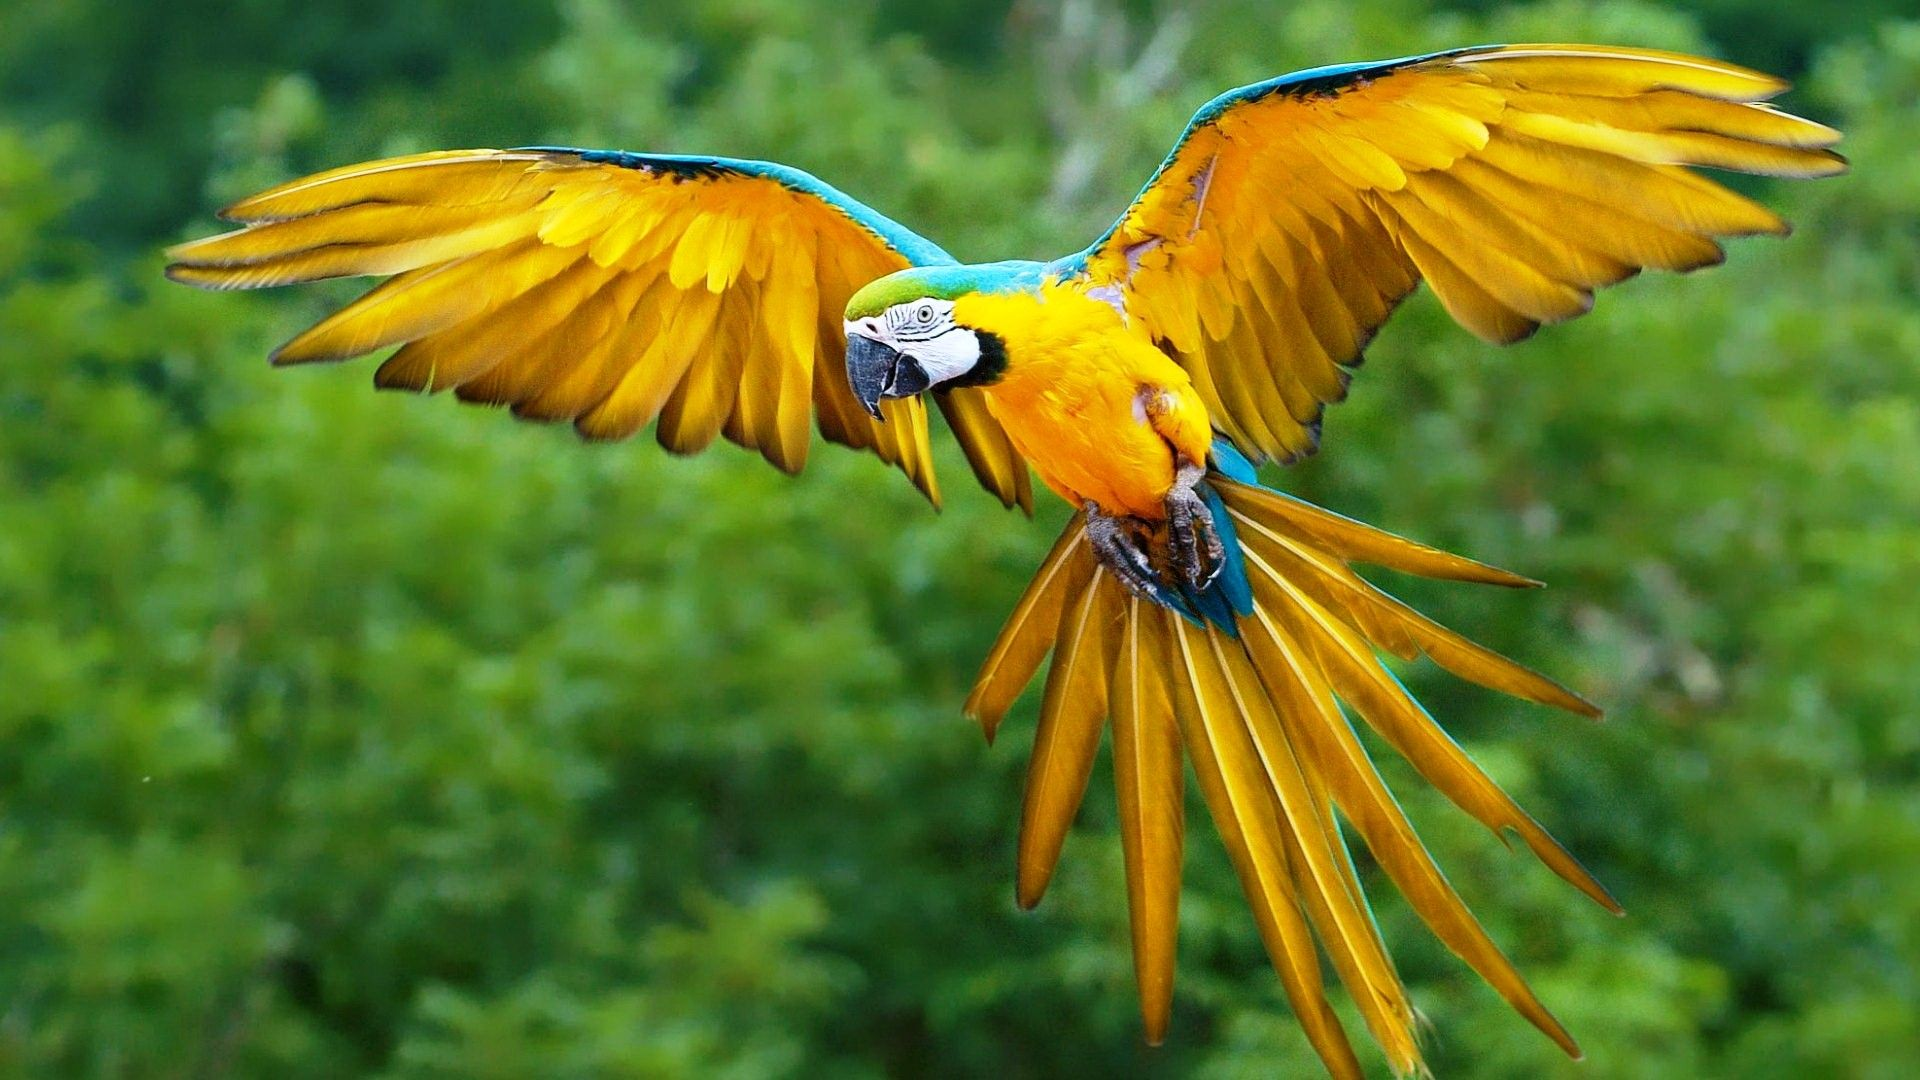 Colorful Bird Parrot Flying On Sky HD Wallpaper Diy Rainforest